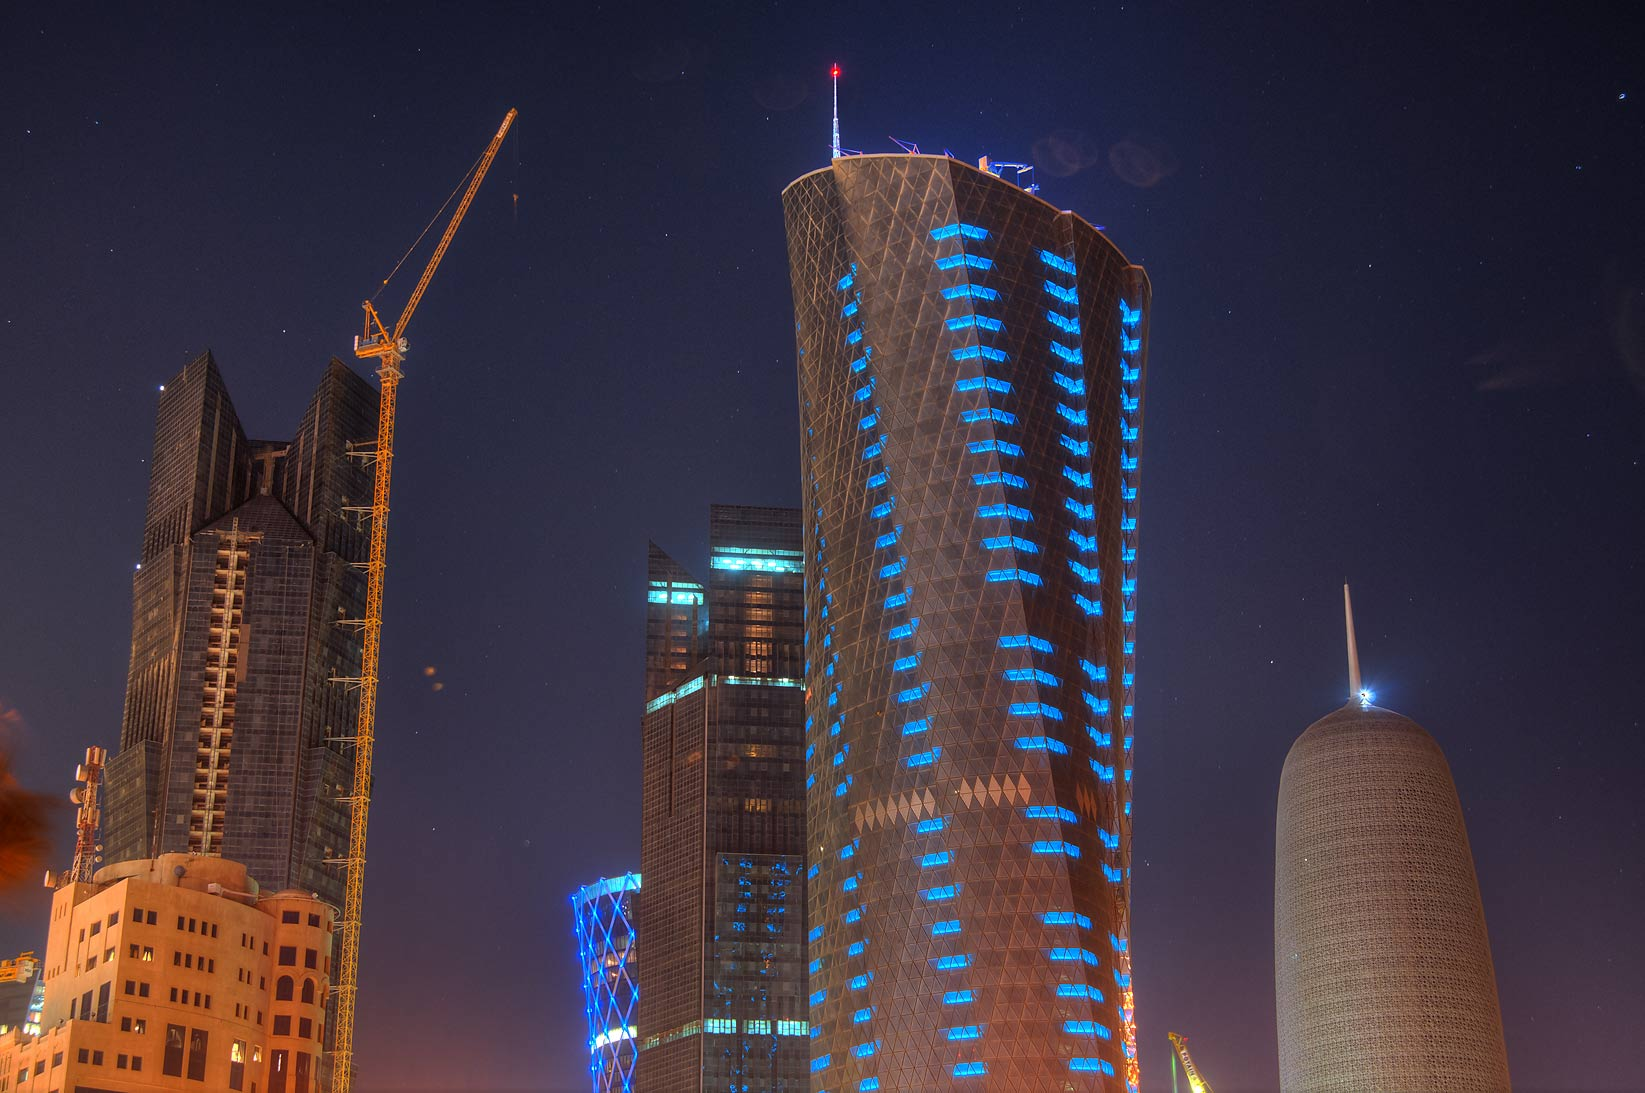 Al Bidda and other West Bay towers, view from Corniche. Doha, Qatar